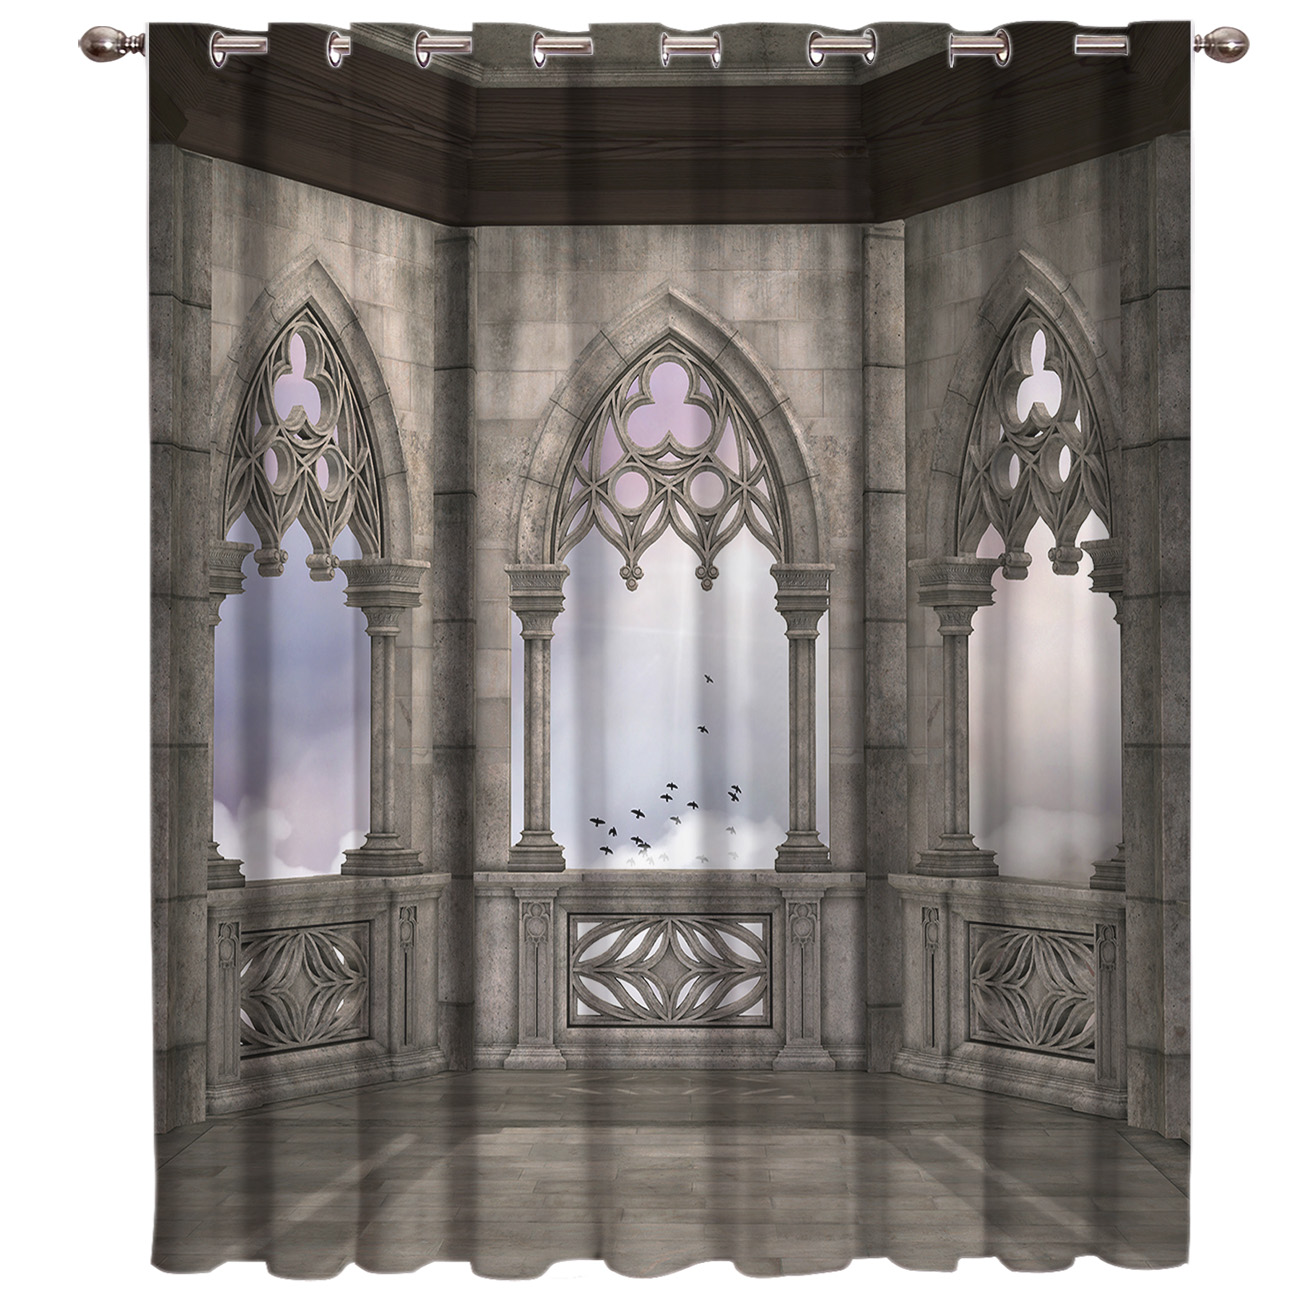 Gothic House Decorative Curtains Room Curtains Large Window Window Curtains Dark Bathroom Curtains Kitchen Indoor Fabric Drapes